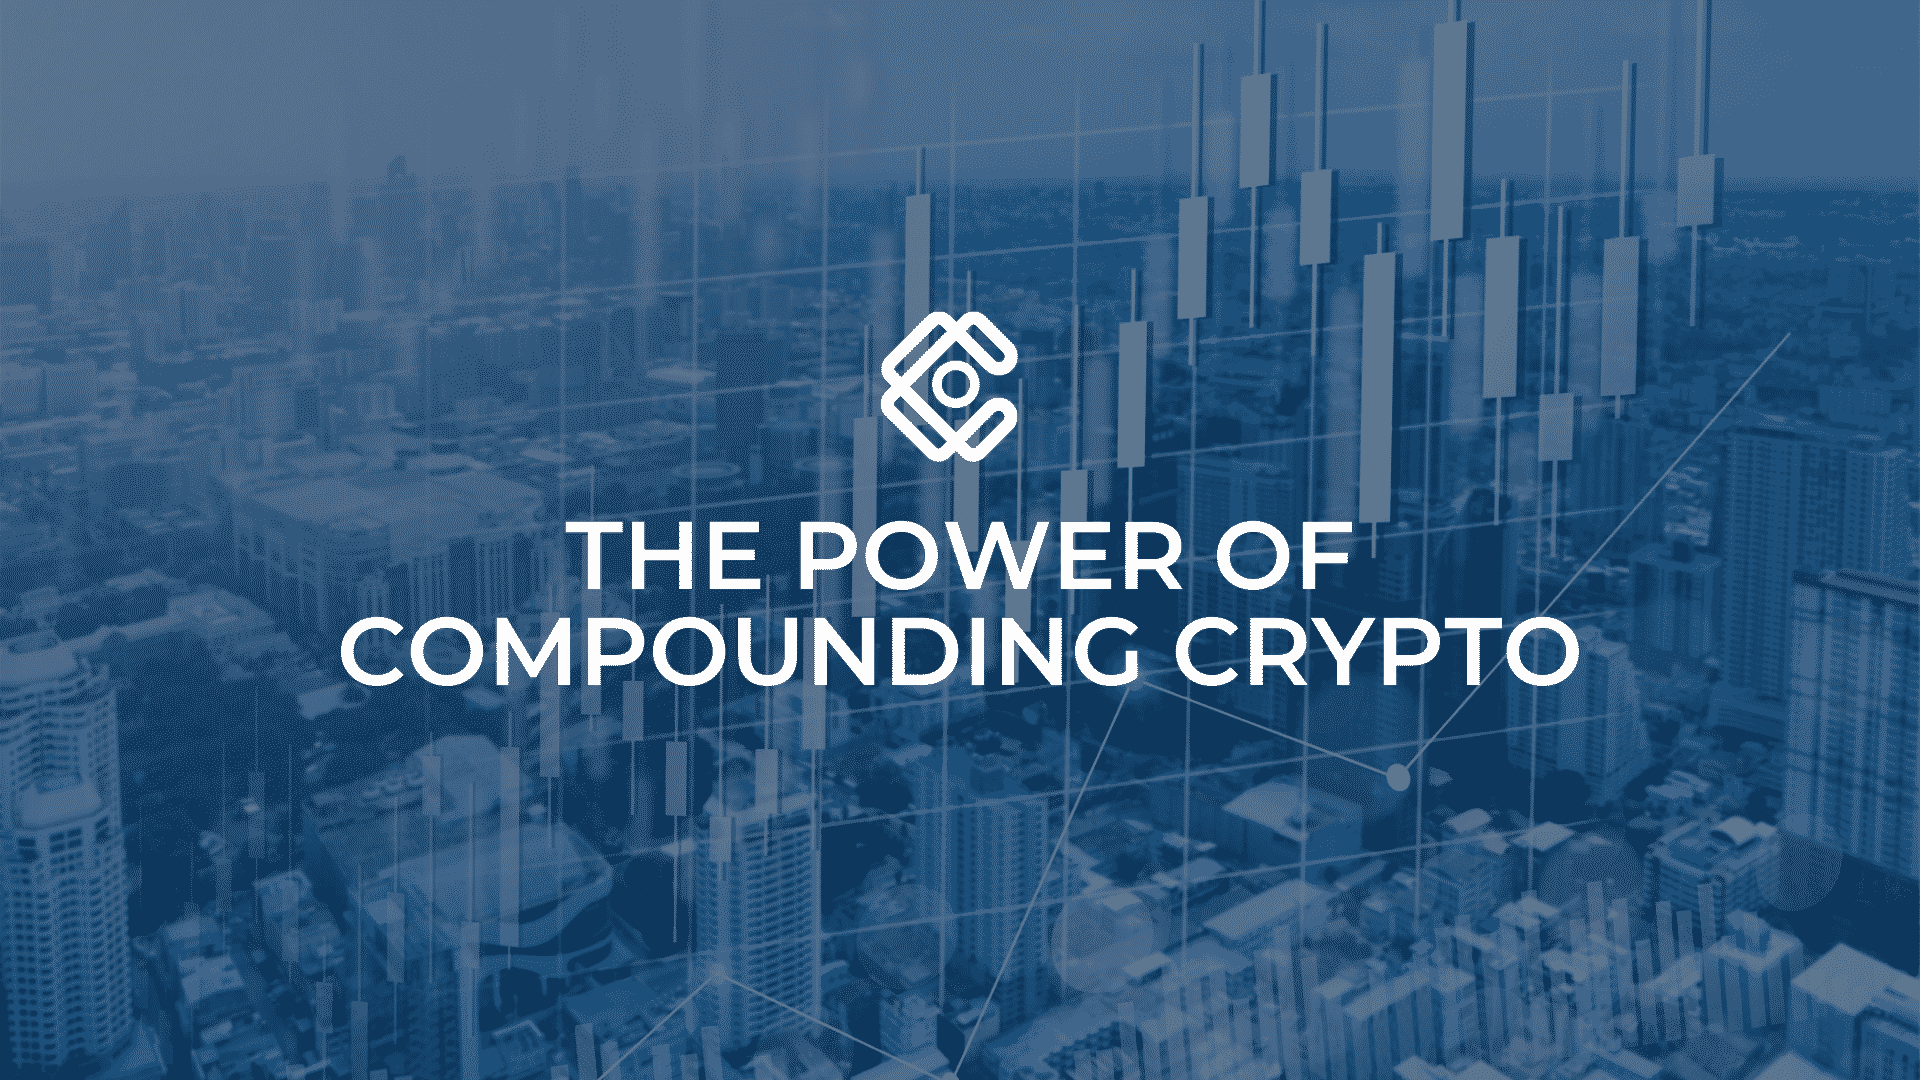 The Power of Compounding Crypto